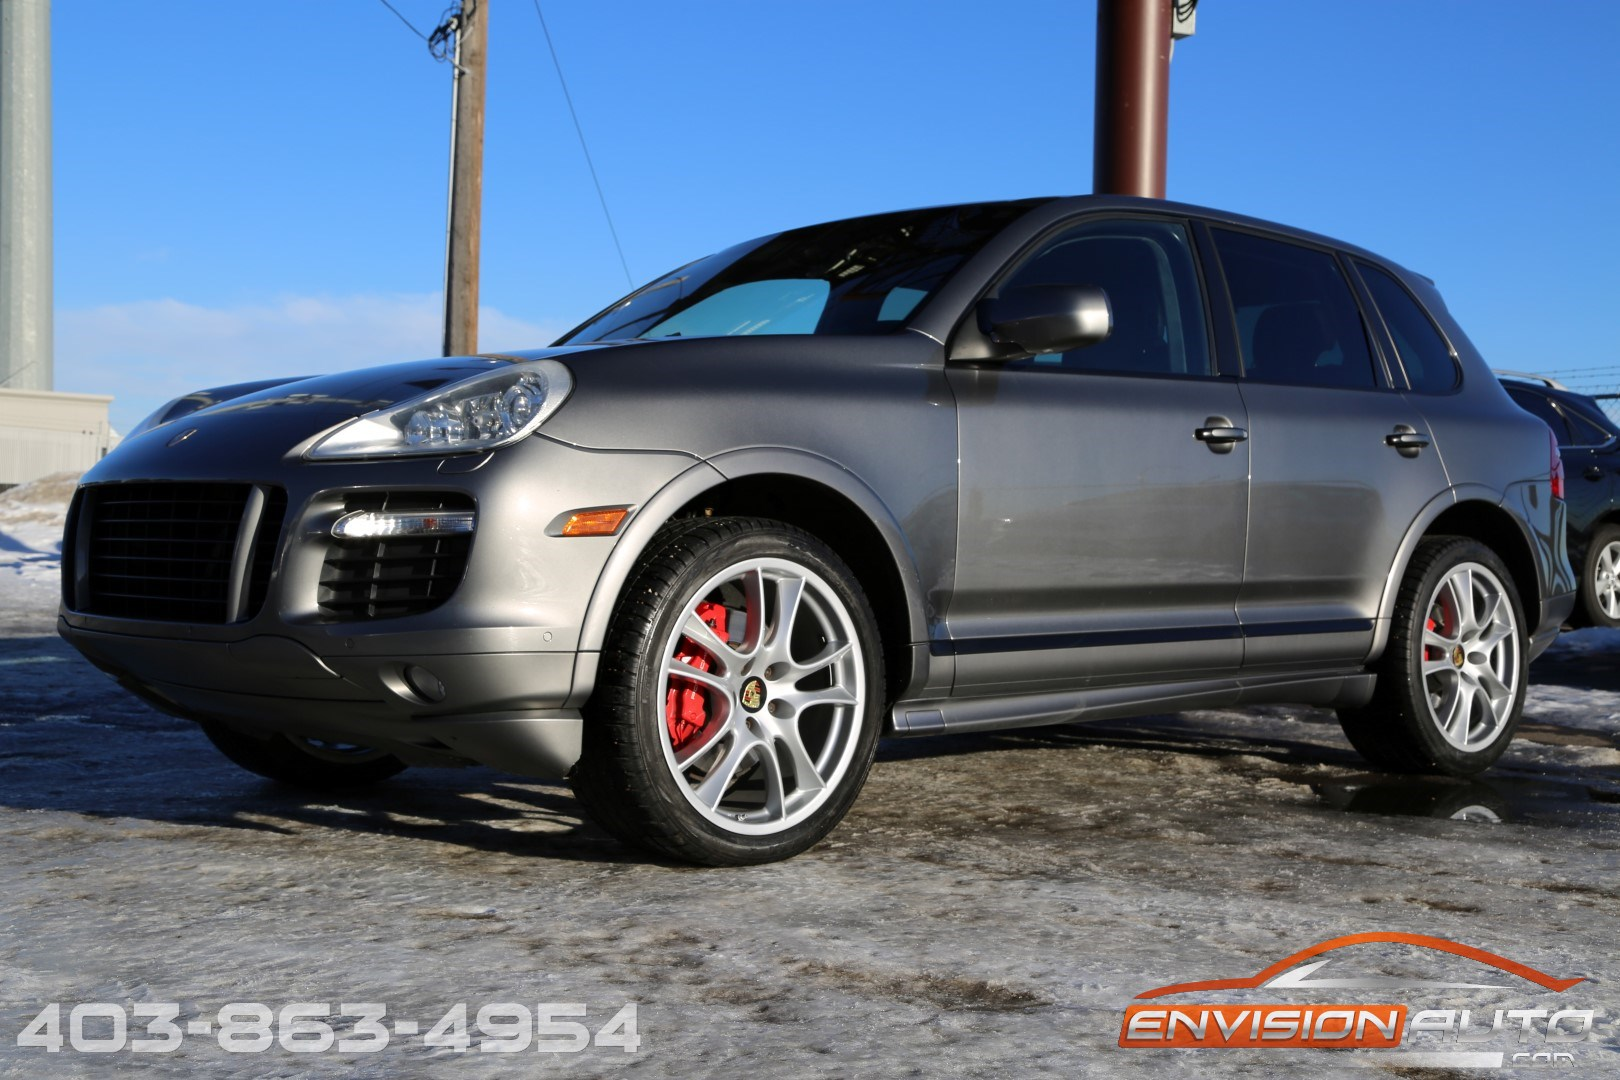 2009 porsche cayenne gts awd envision auto. Black Bedroom Furniture Sets. Home Design Ideas